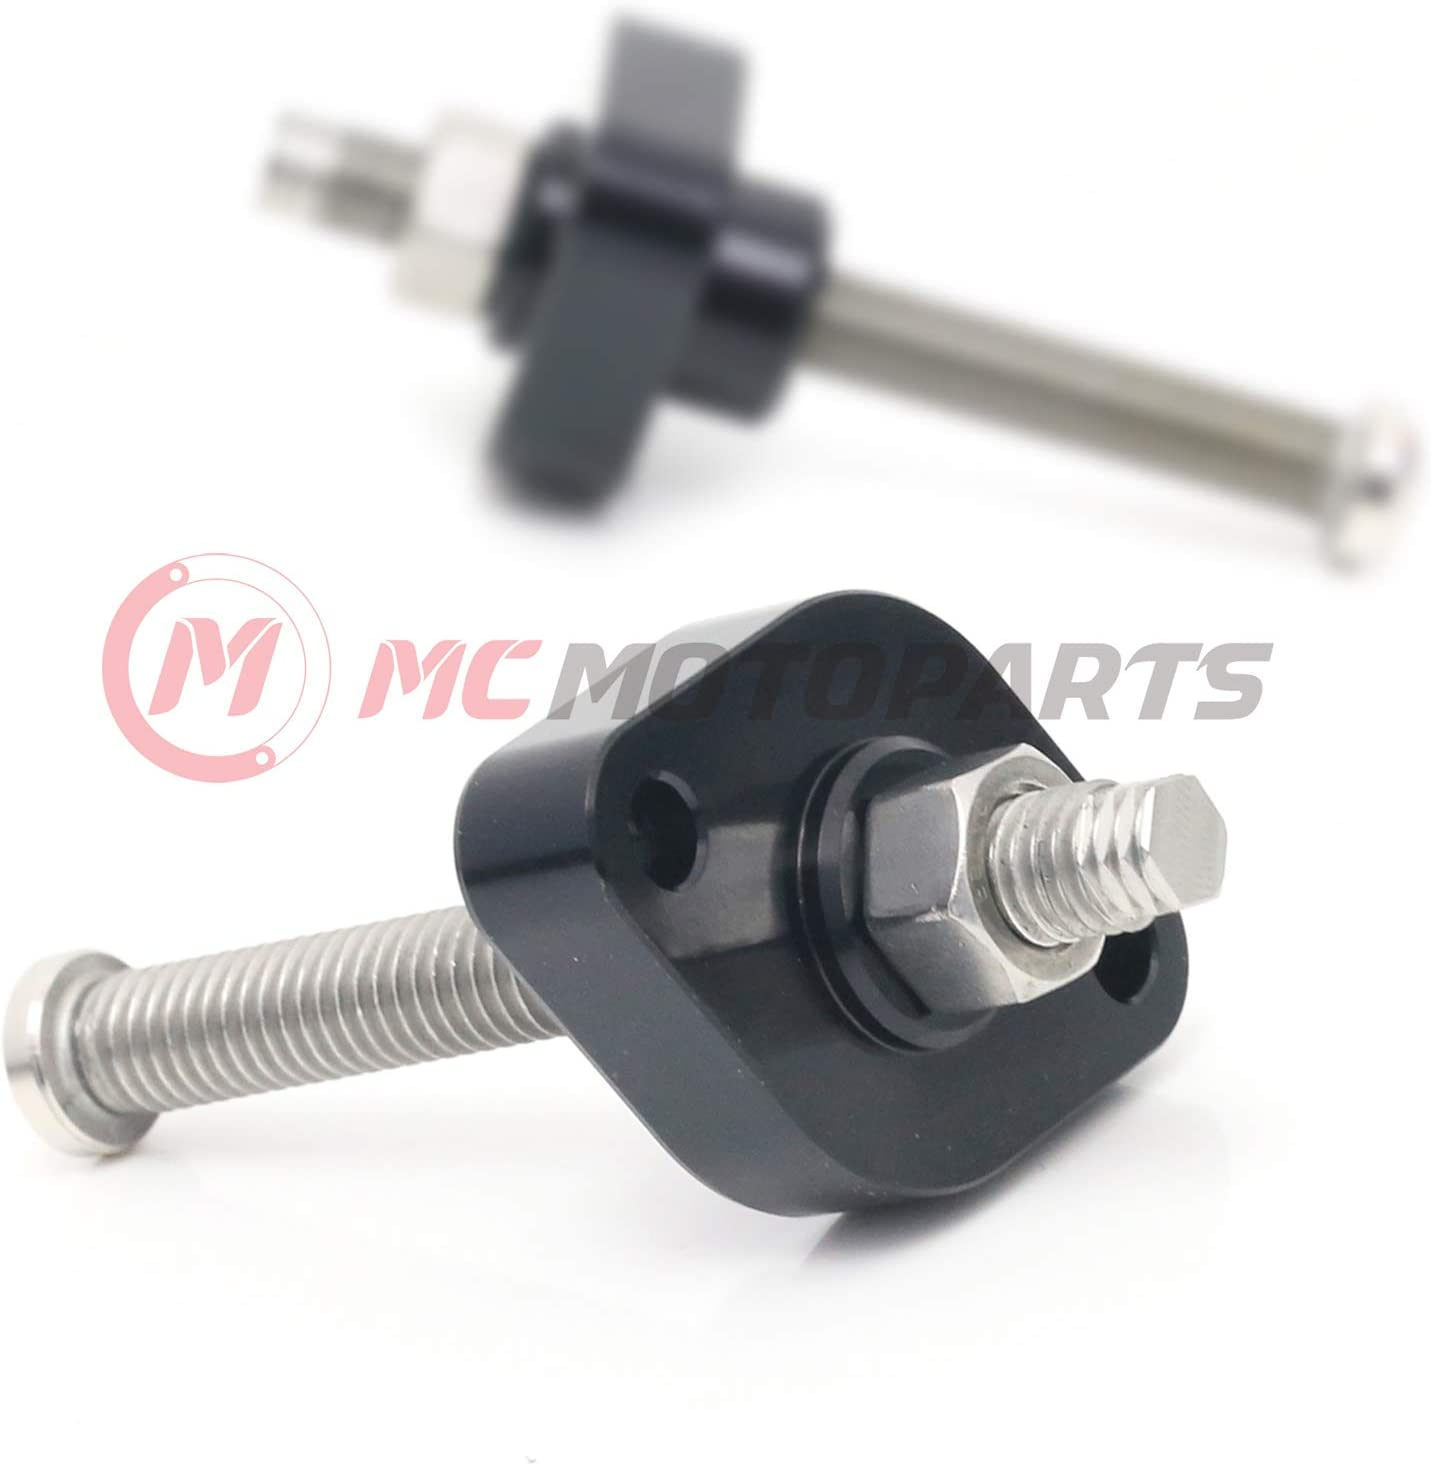 MC MOTOPARTS CNC Adjustable HP Manual Cam Chain Tensioner For GSXR 600 1997-2000 1998 1999 Red